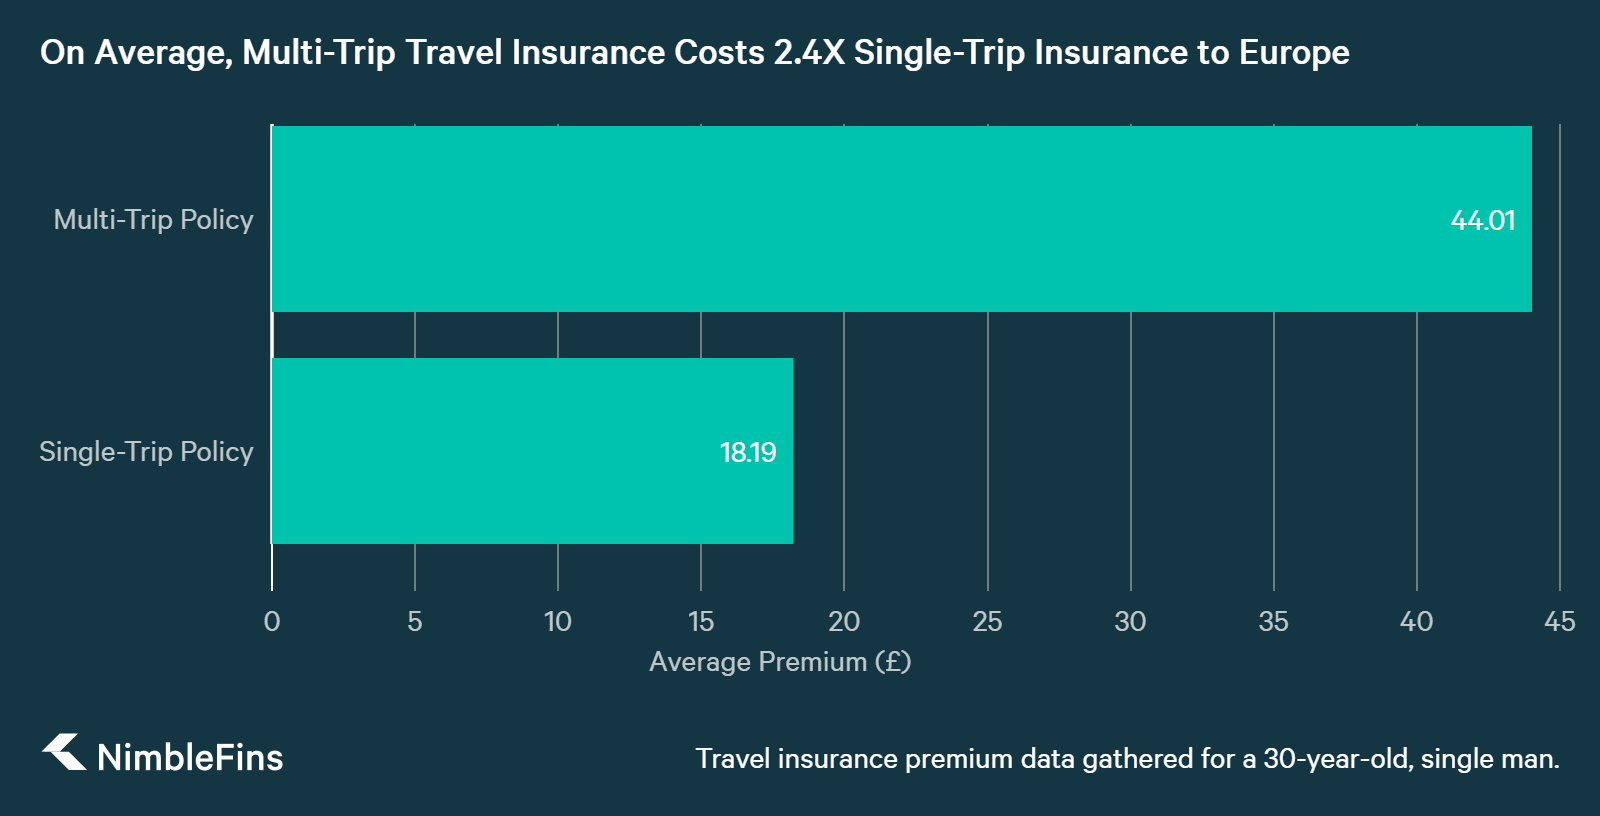 chart showing Travel Insurance Average Costs: Single-Trip vs. Multi-Trip for Europe